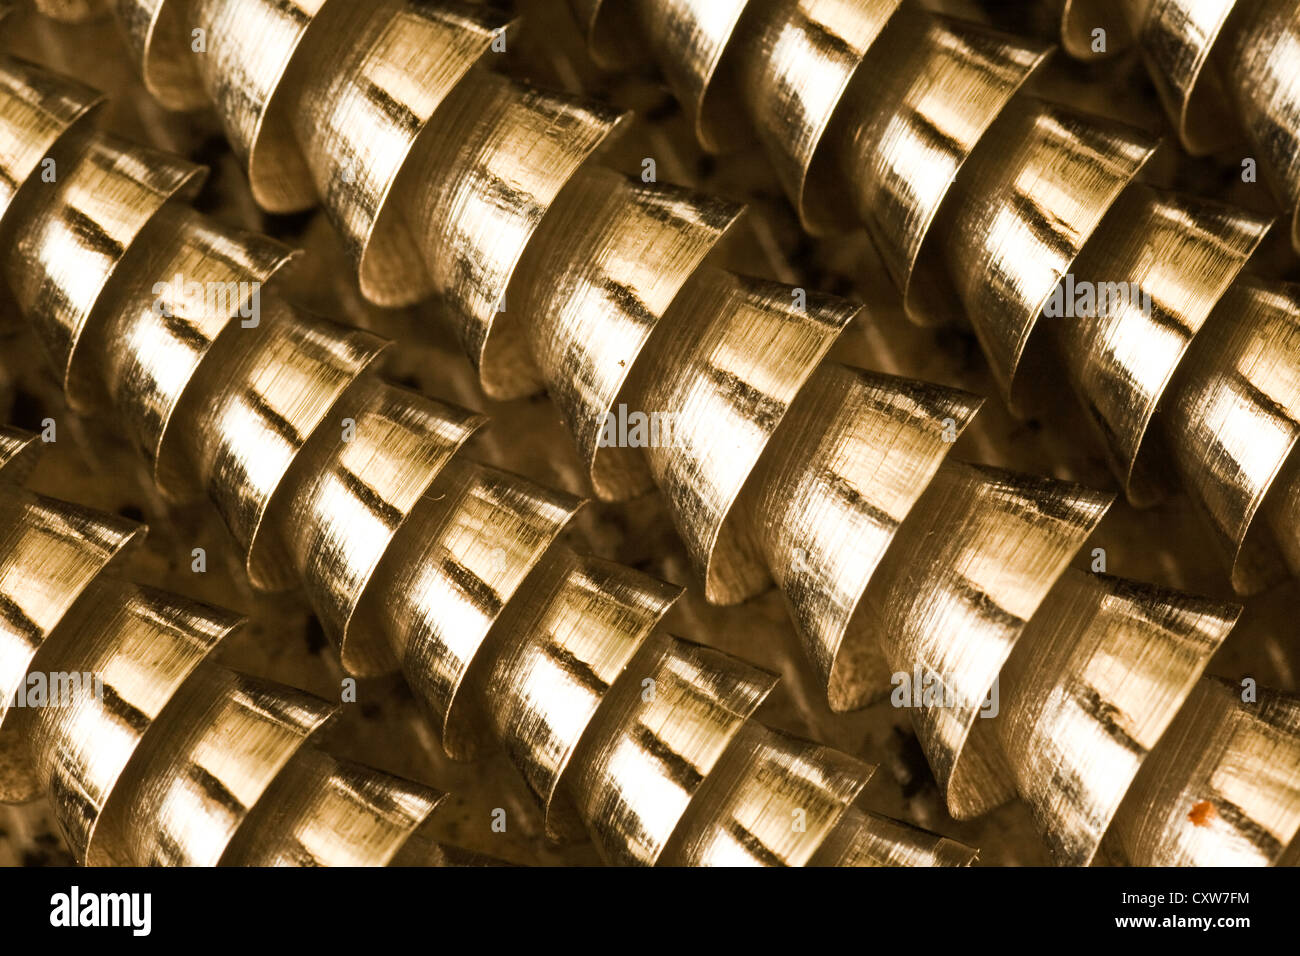 Abstract image of coiled machining swarf from a metal lathe. Number 1 - Stock Image